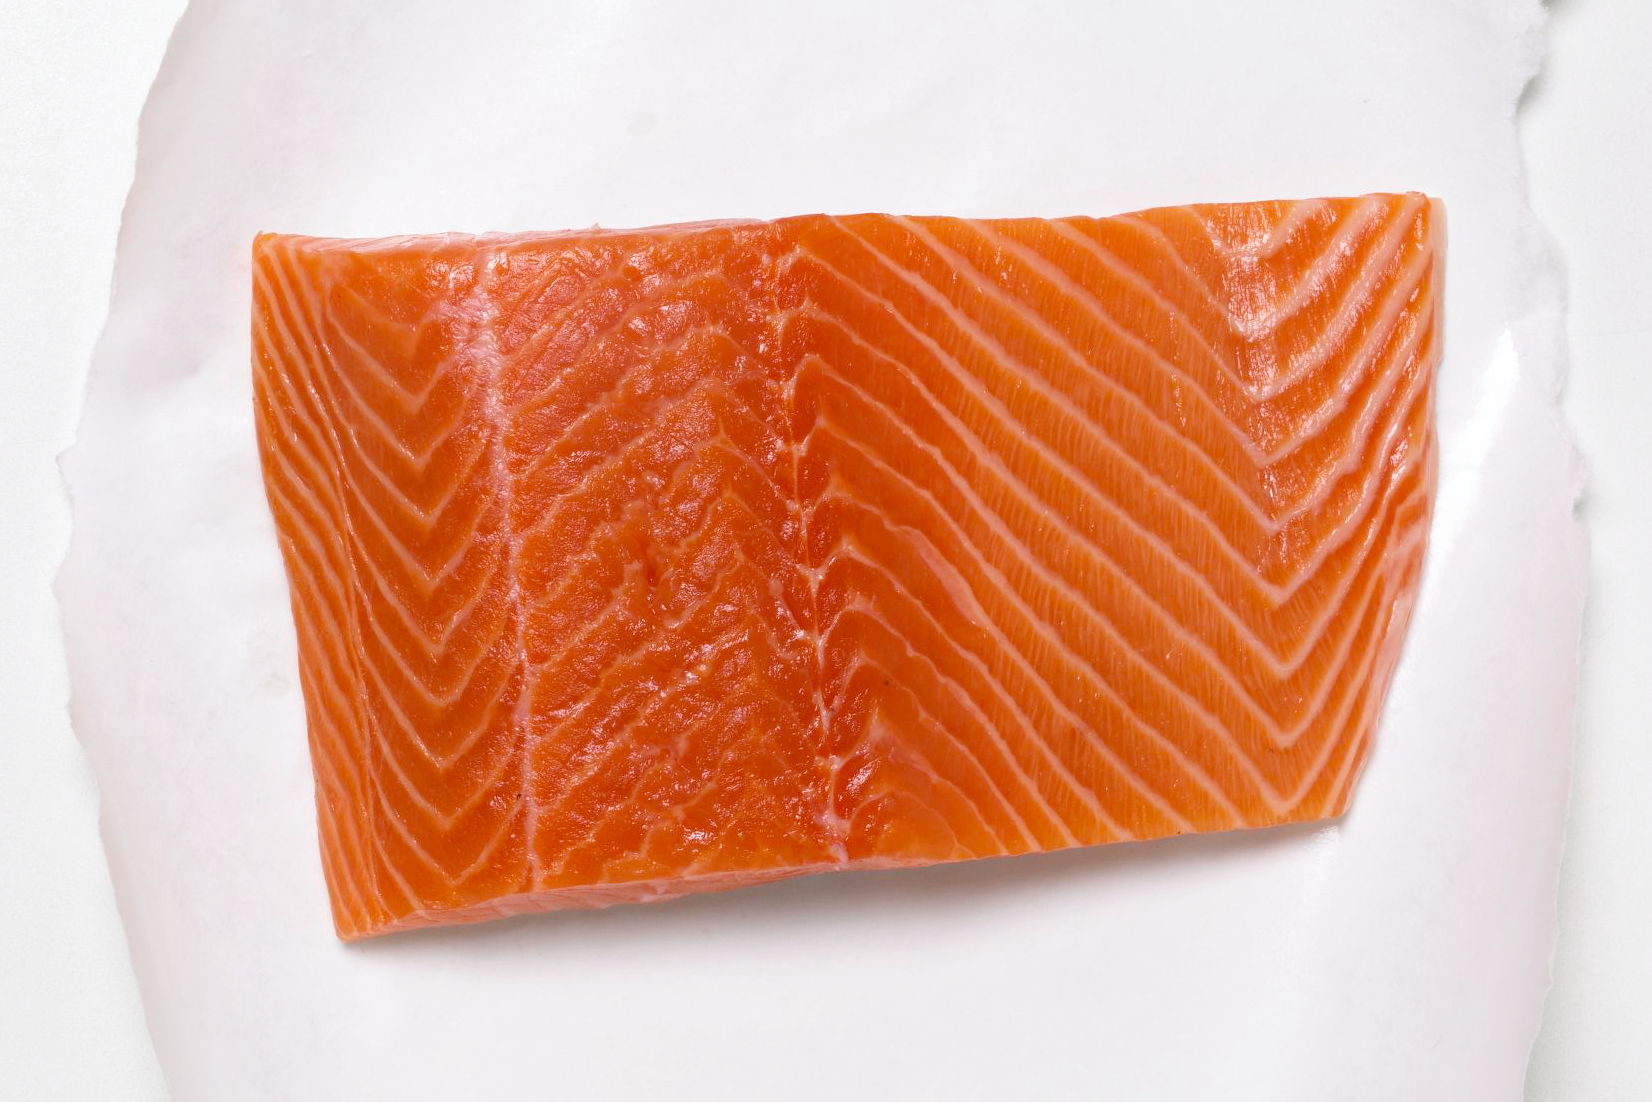 fresh salmon filet on a piece of wax freezer paper